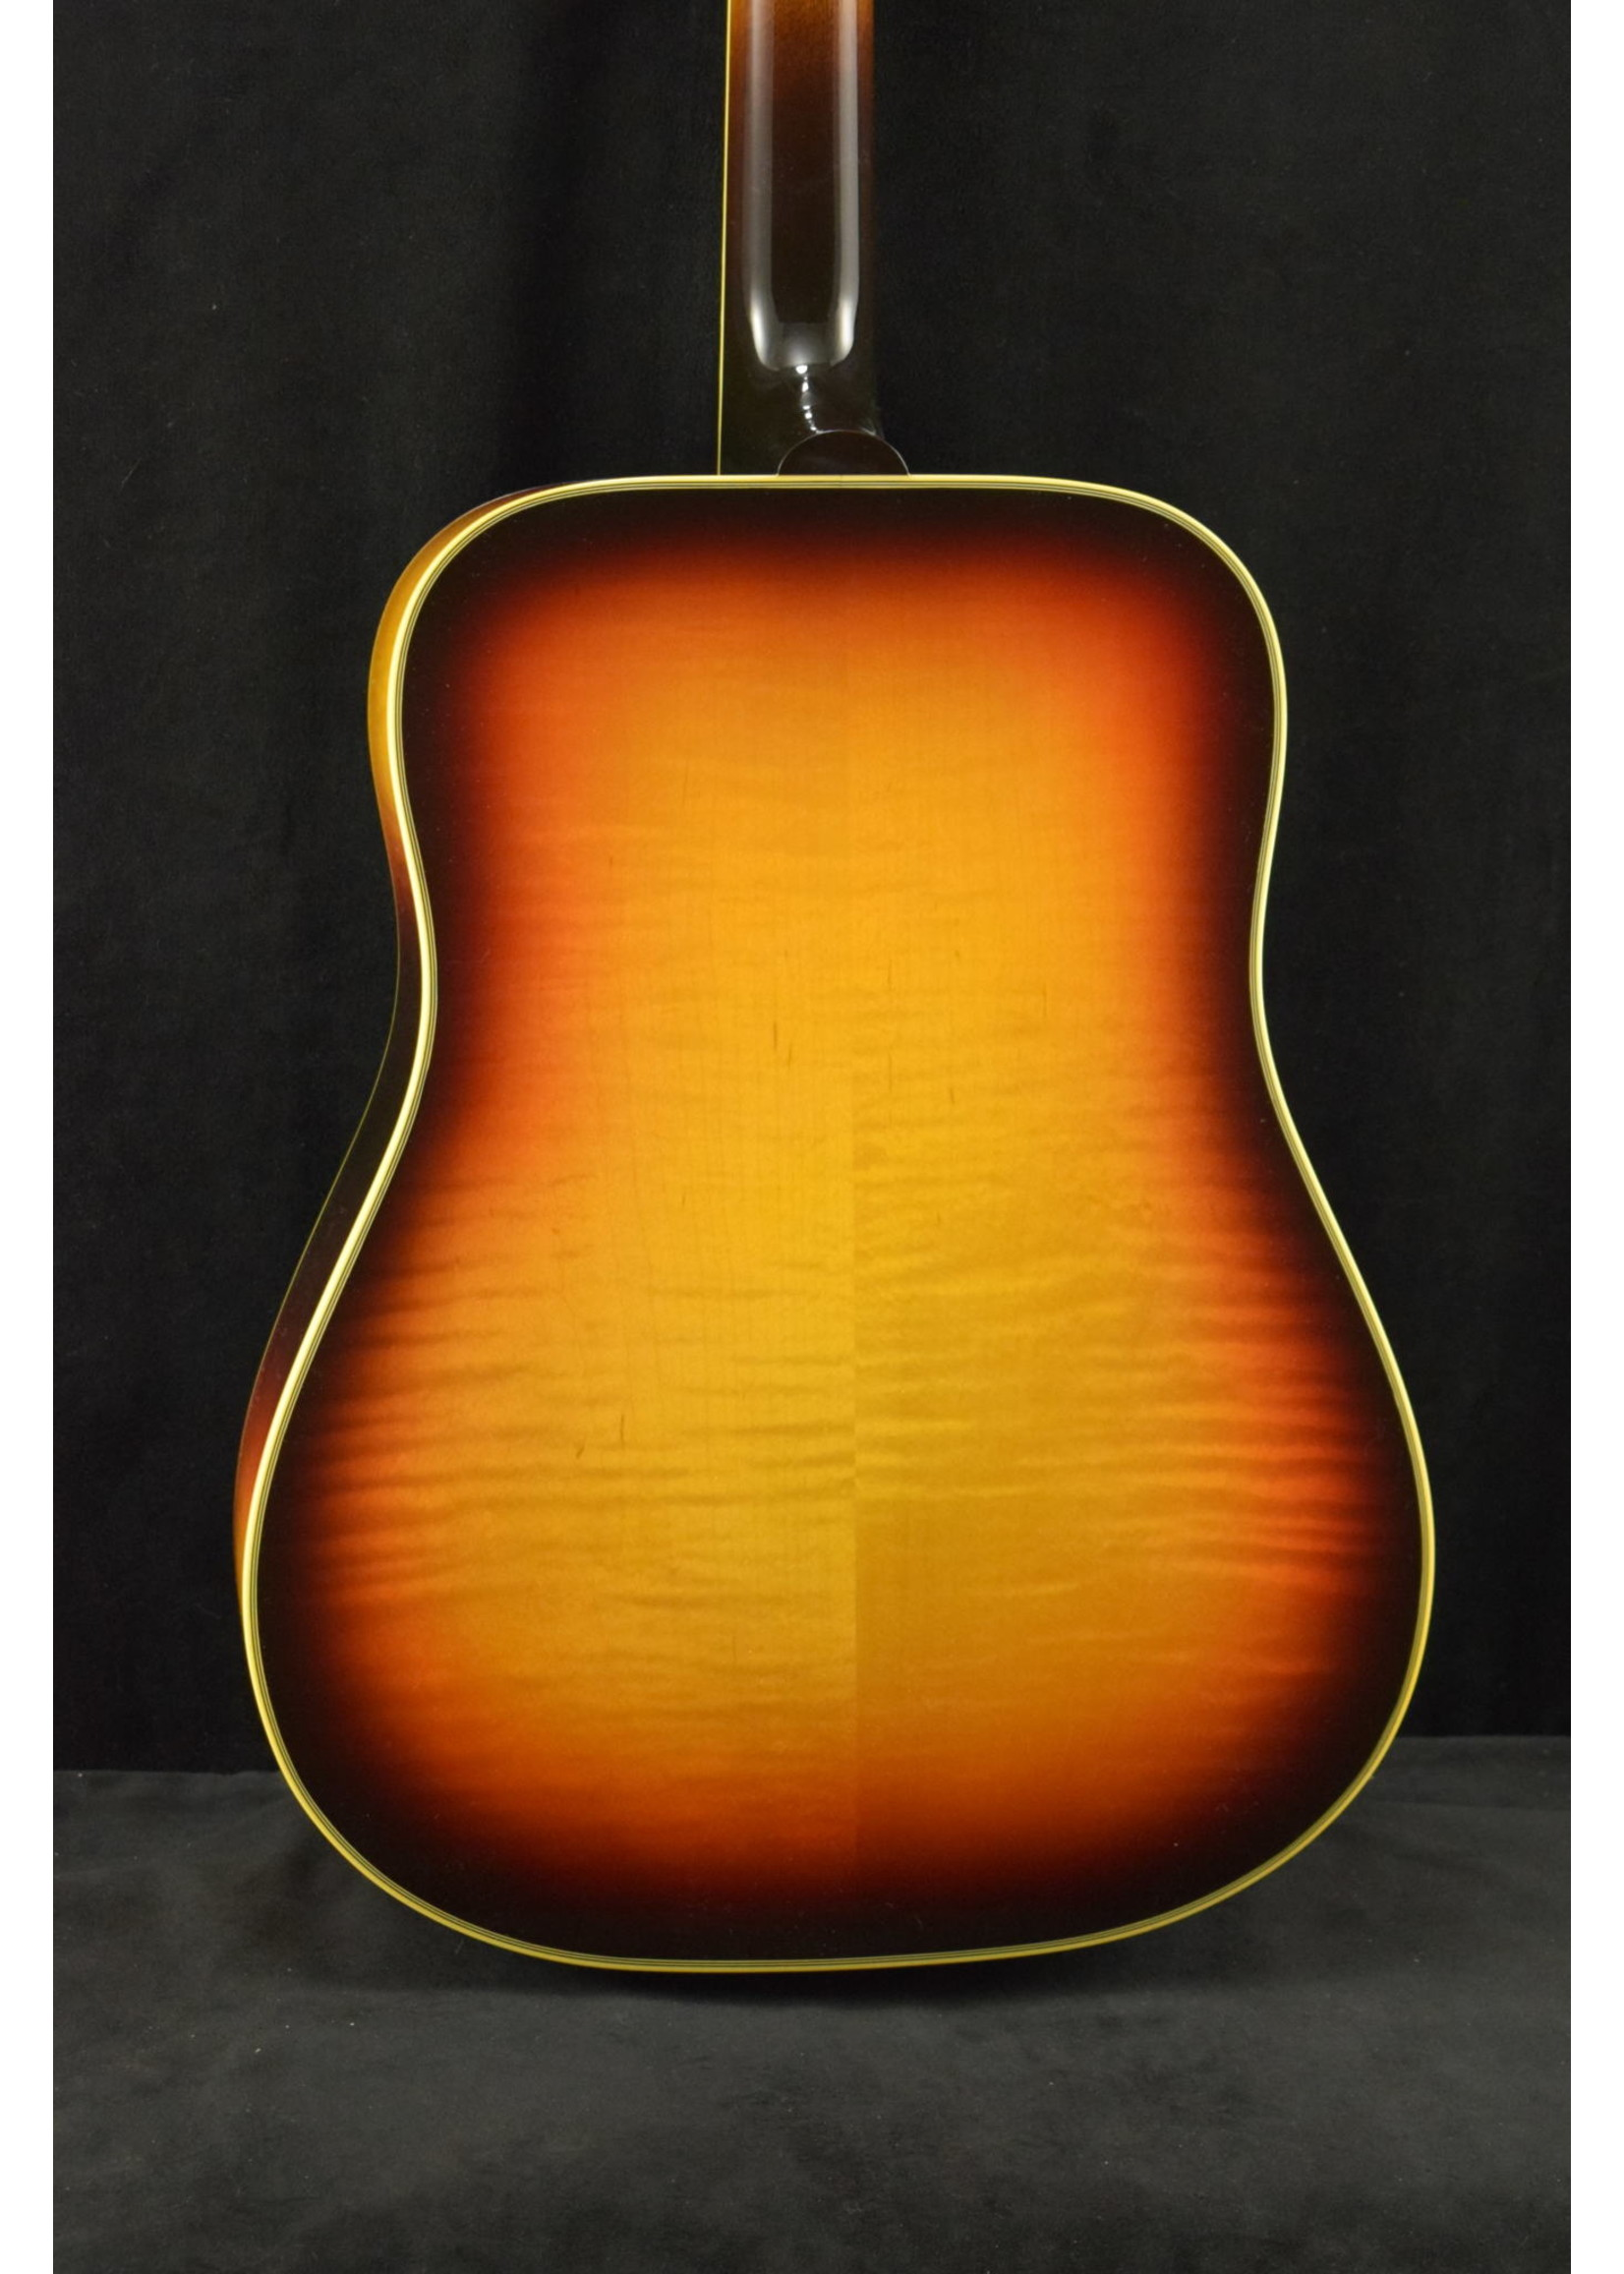 Gibson Epiphone Frontier (USA Collection) FT-110 Frontier Burst